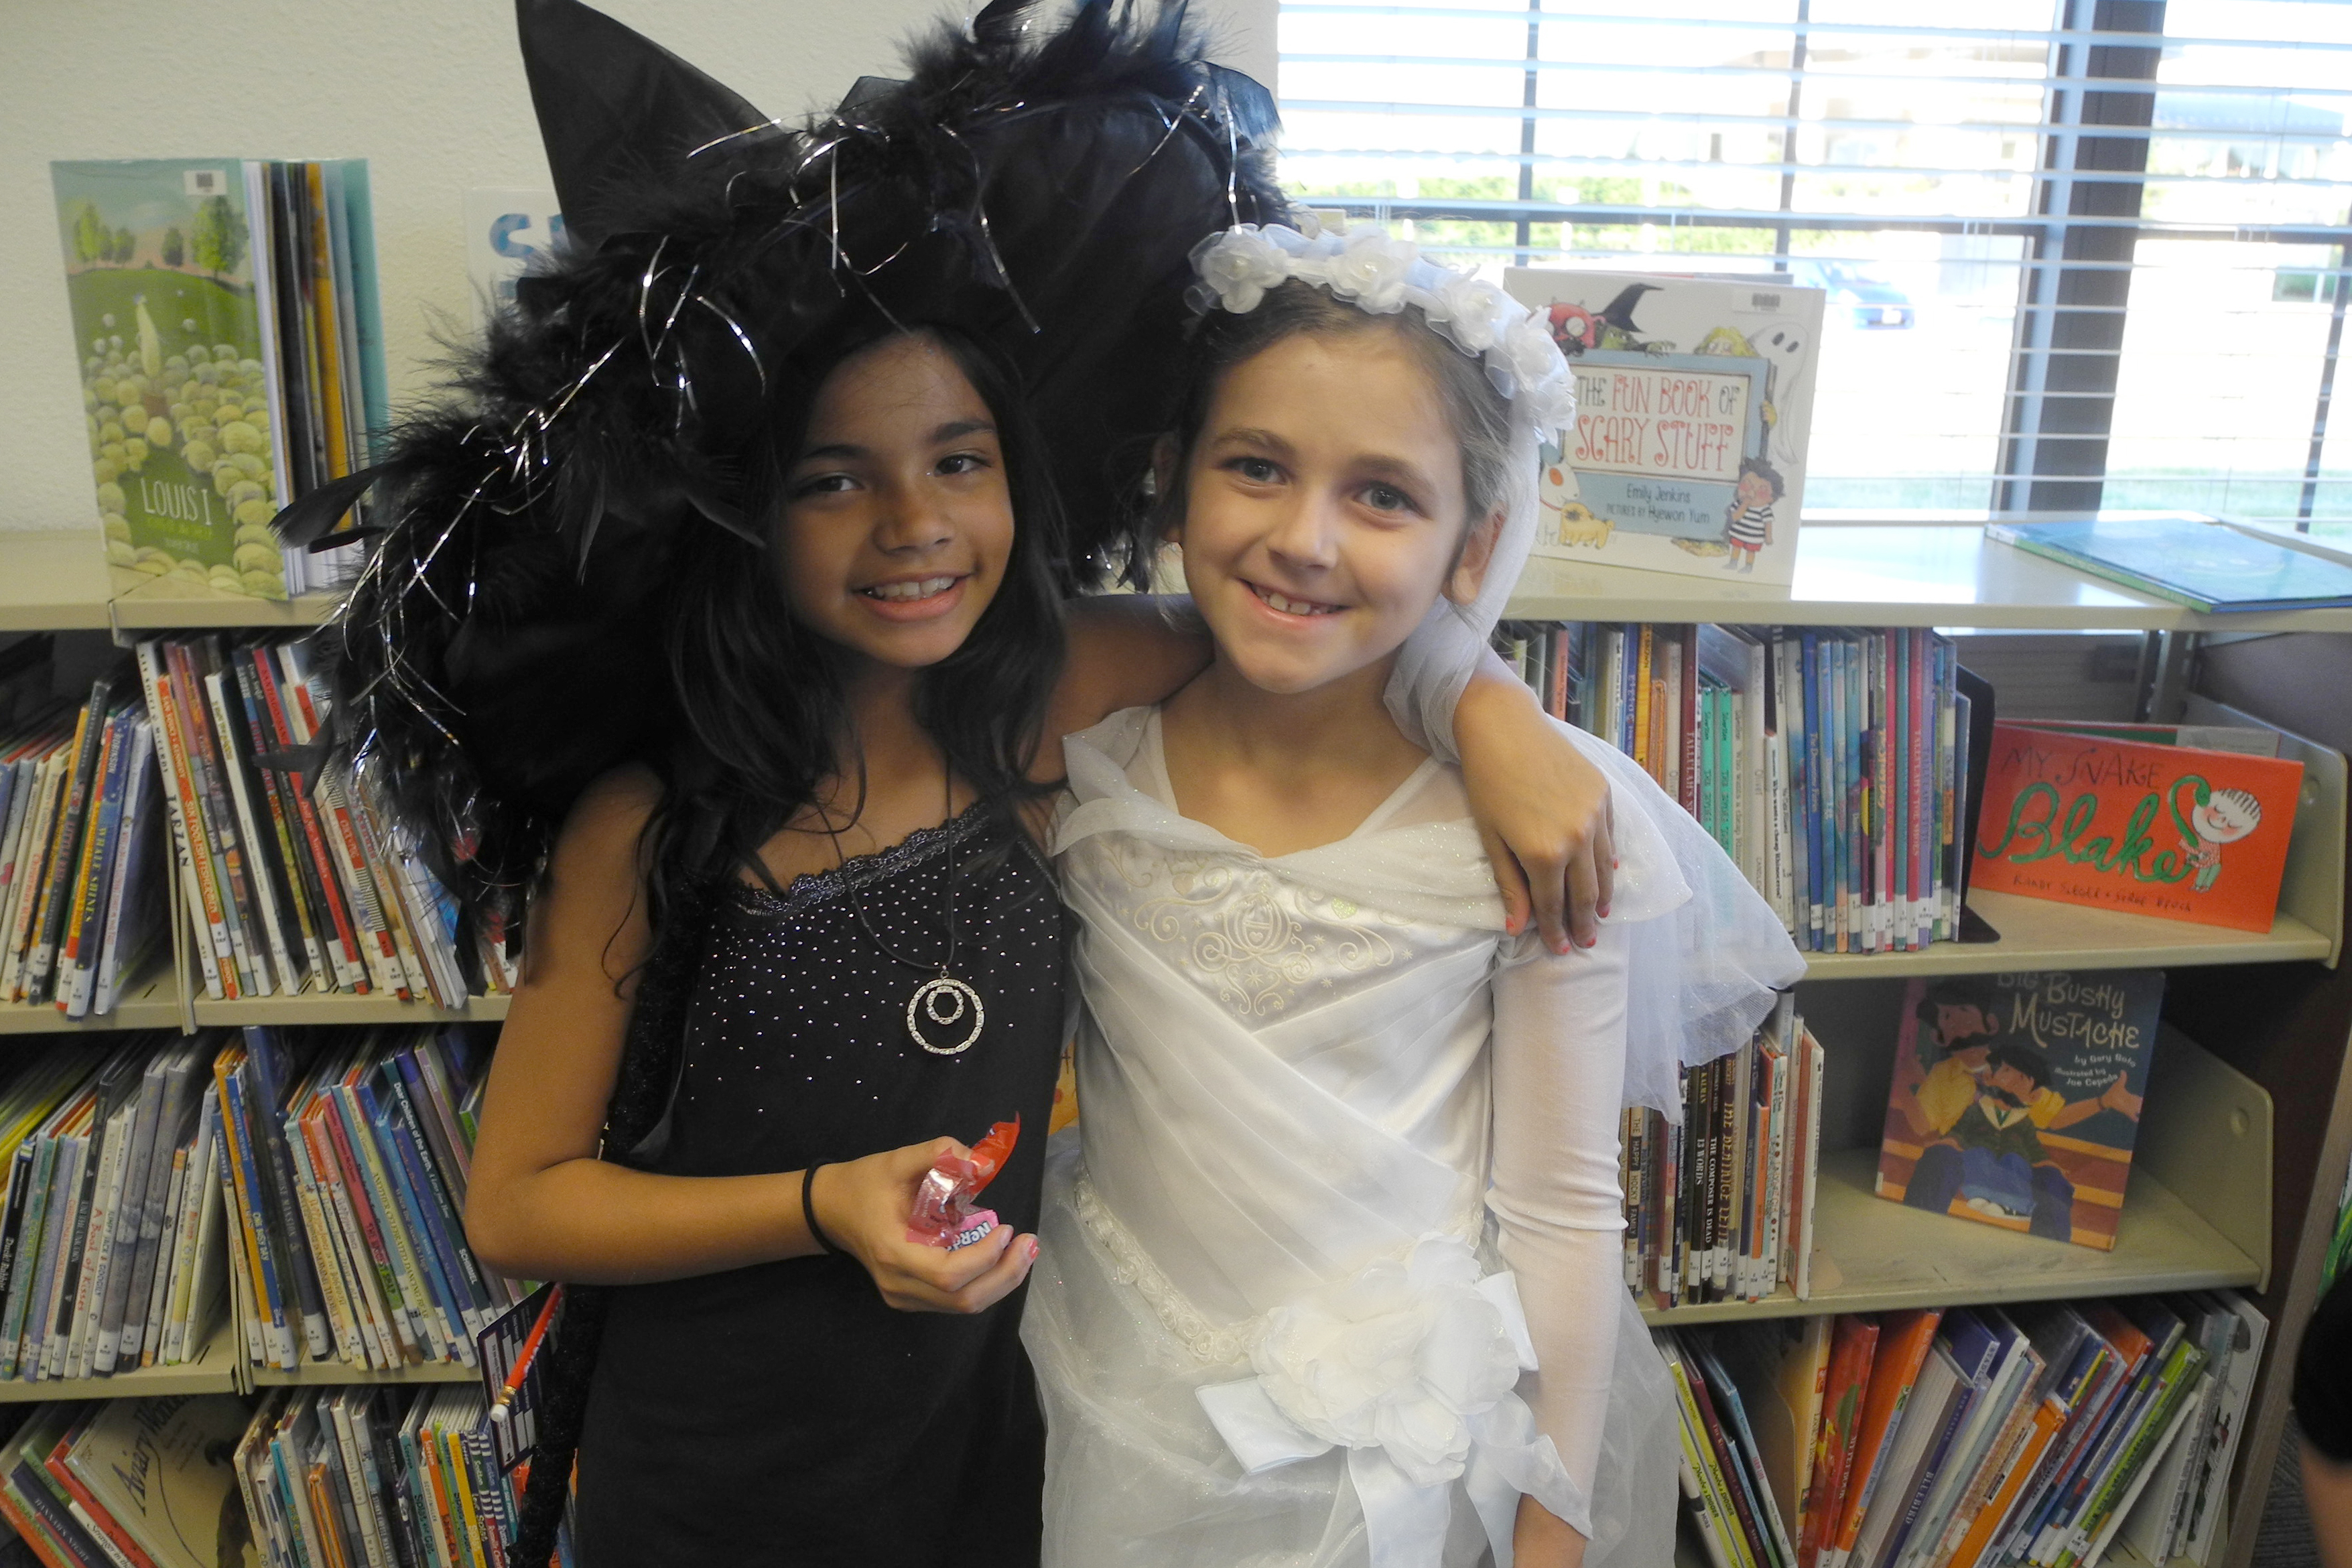 Library hosts spooky Halloween party | Sachse News